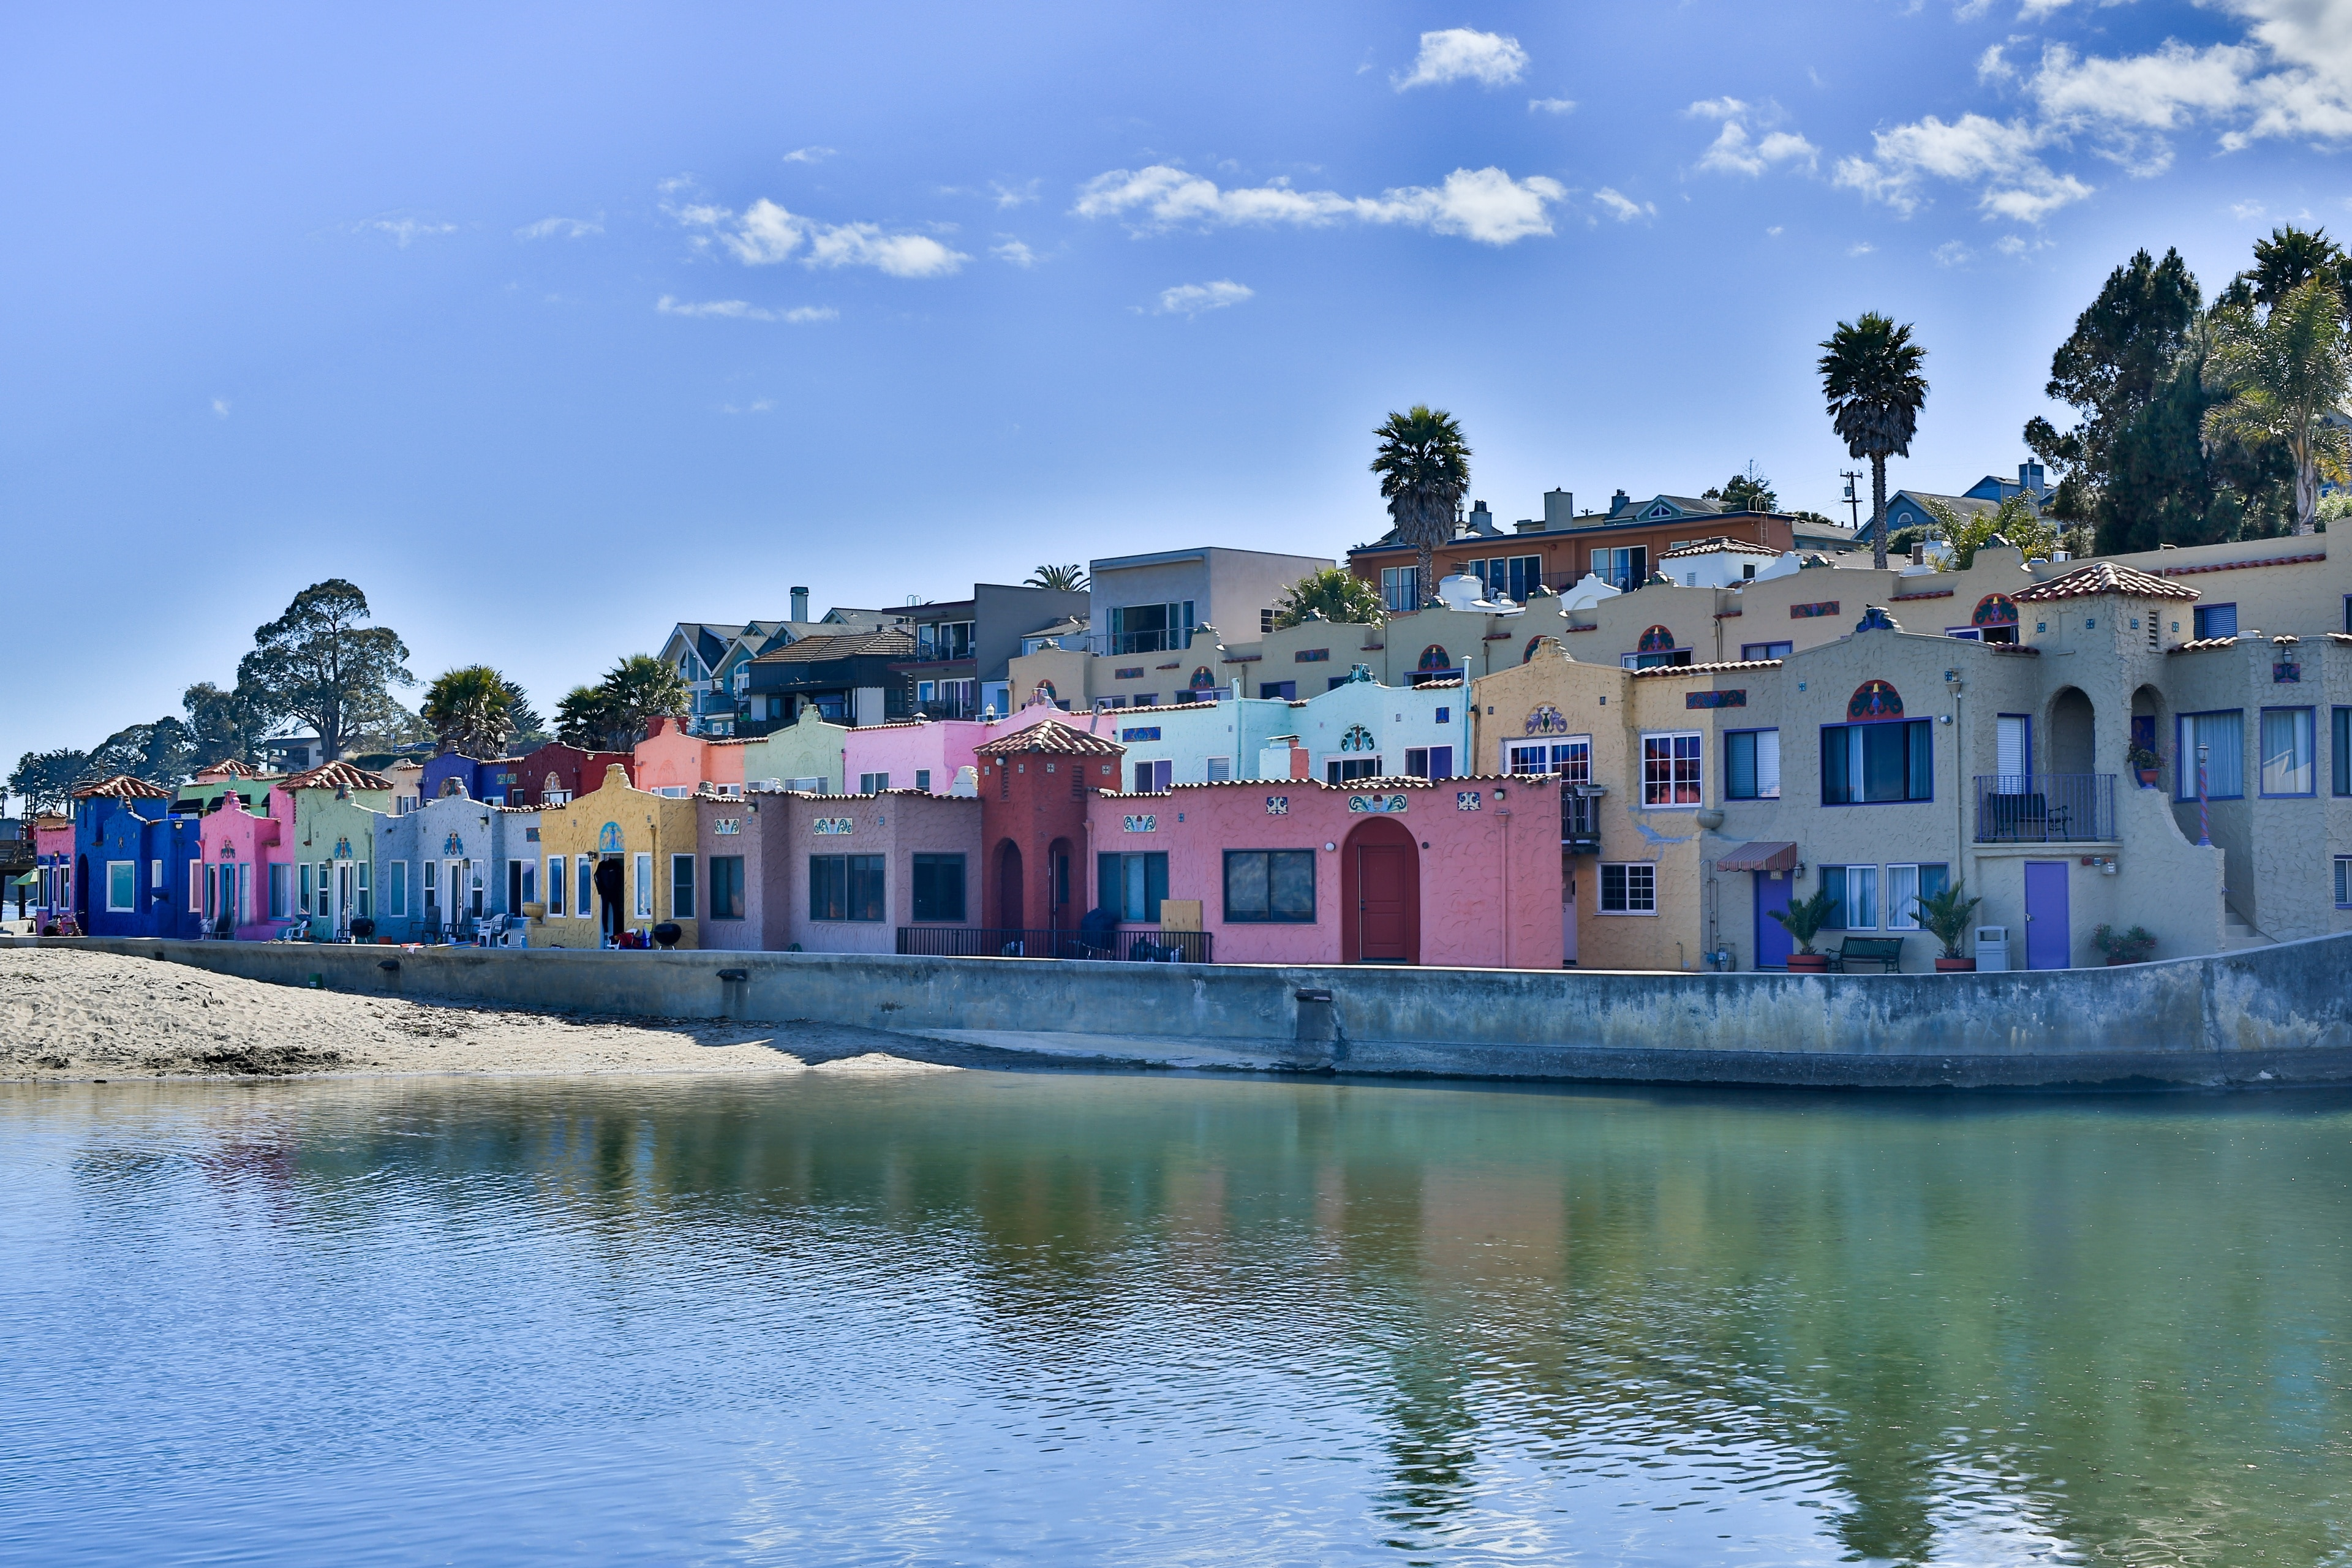 Nothing says vacation like spending a lazy day at Capitola Beach, a popular beach in Capitola. While in this quaint area, you can savor the top-notch restaurants.